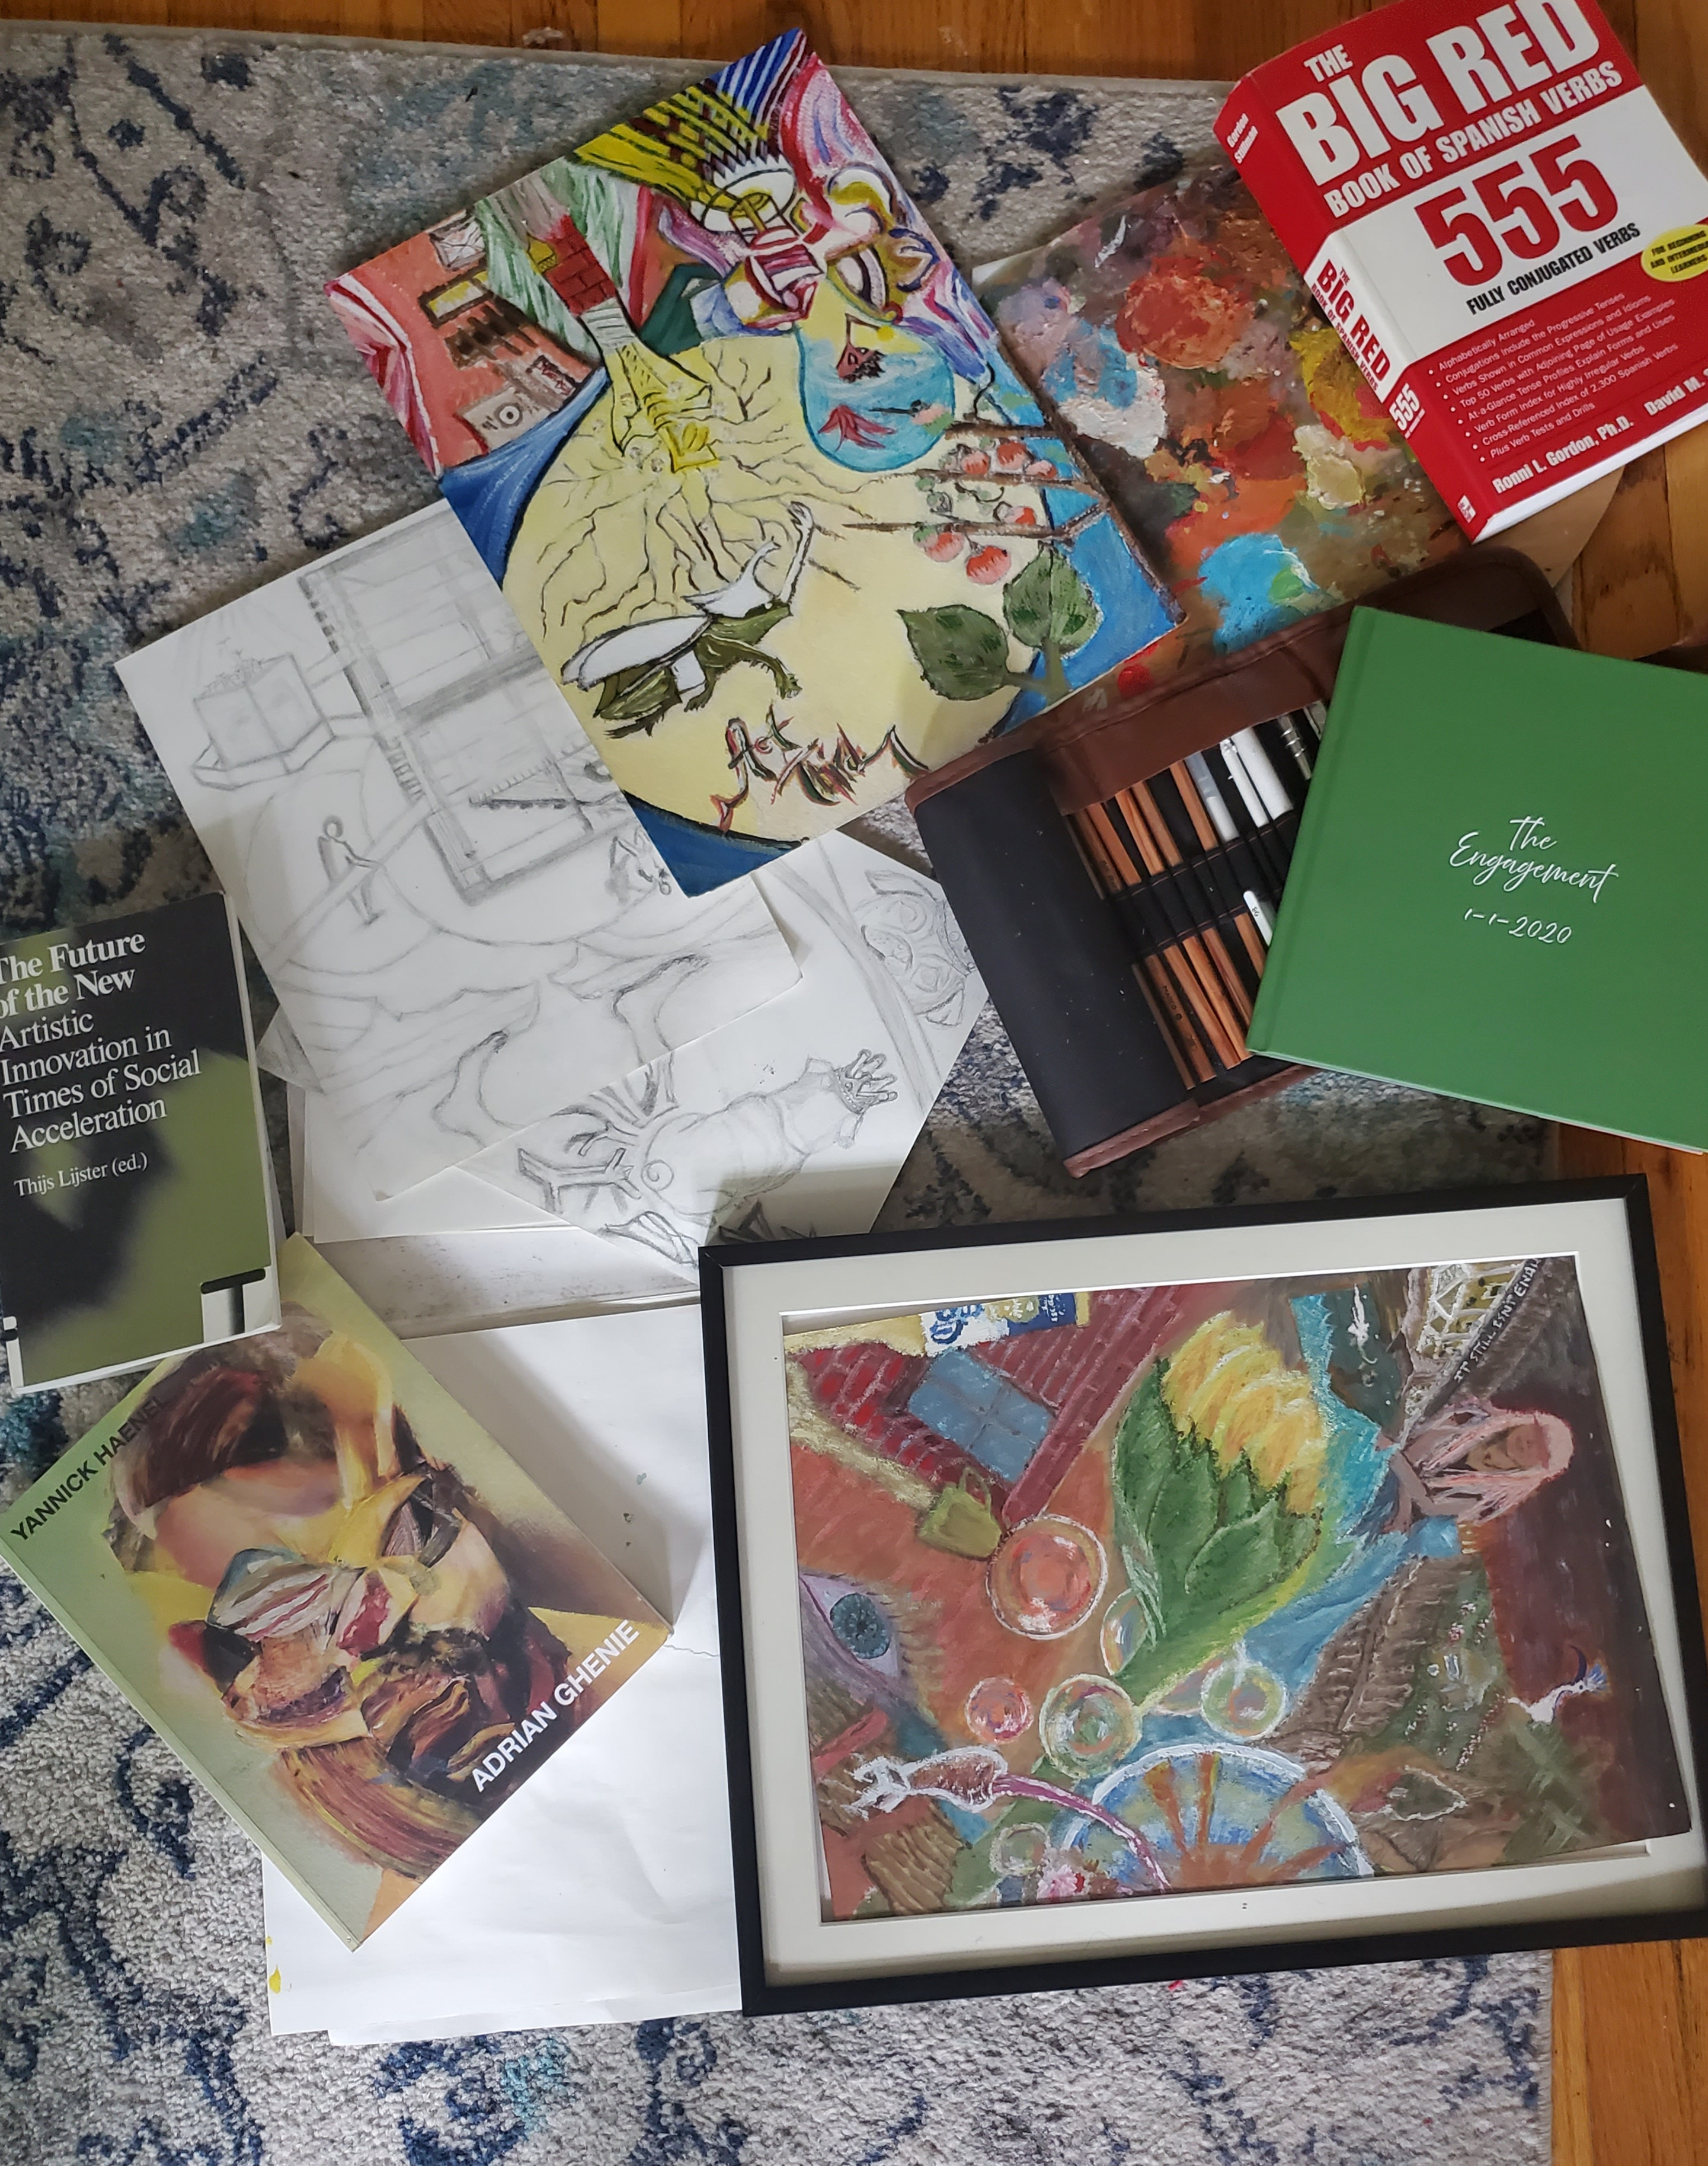 An image of paintings and art supplies